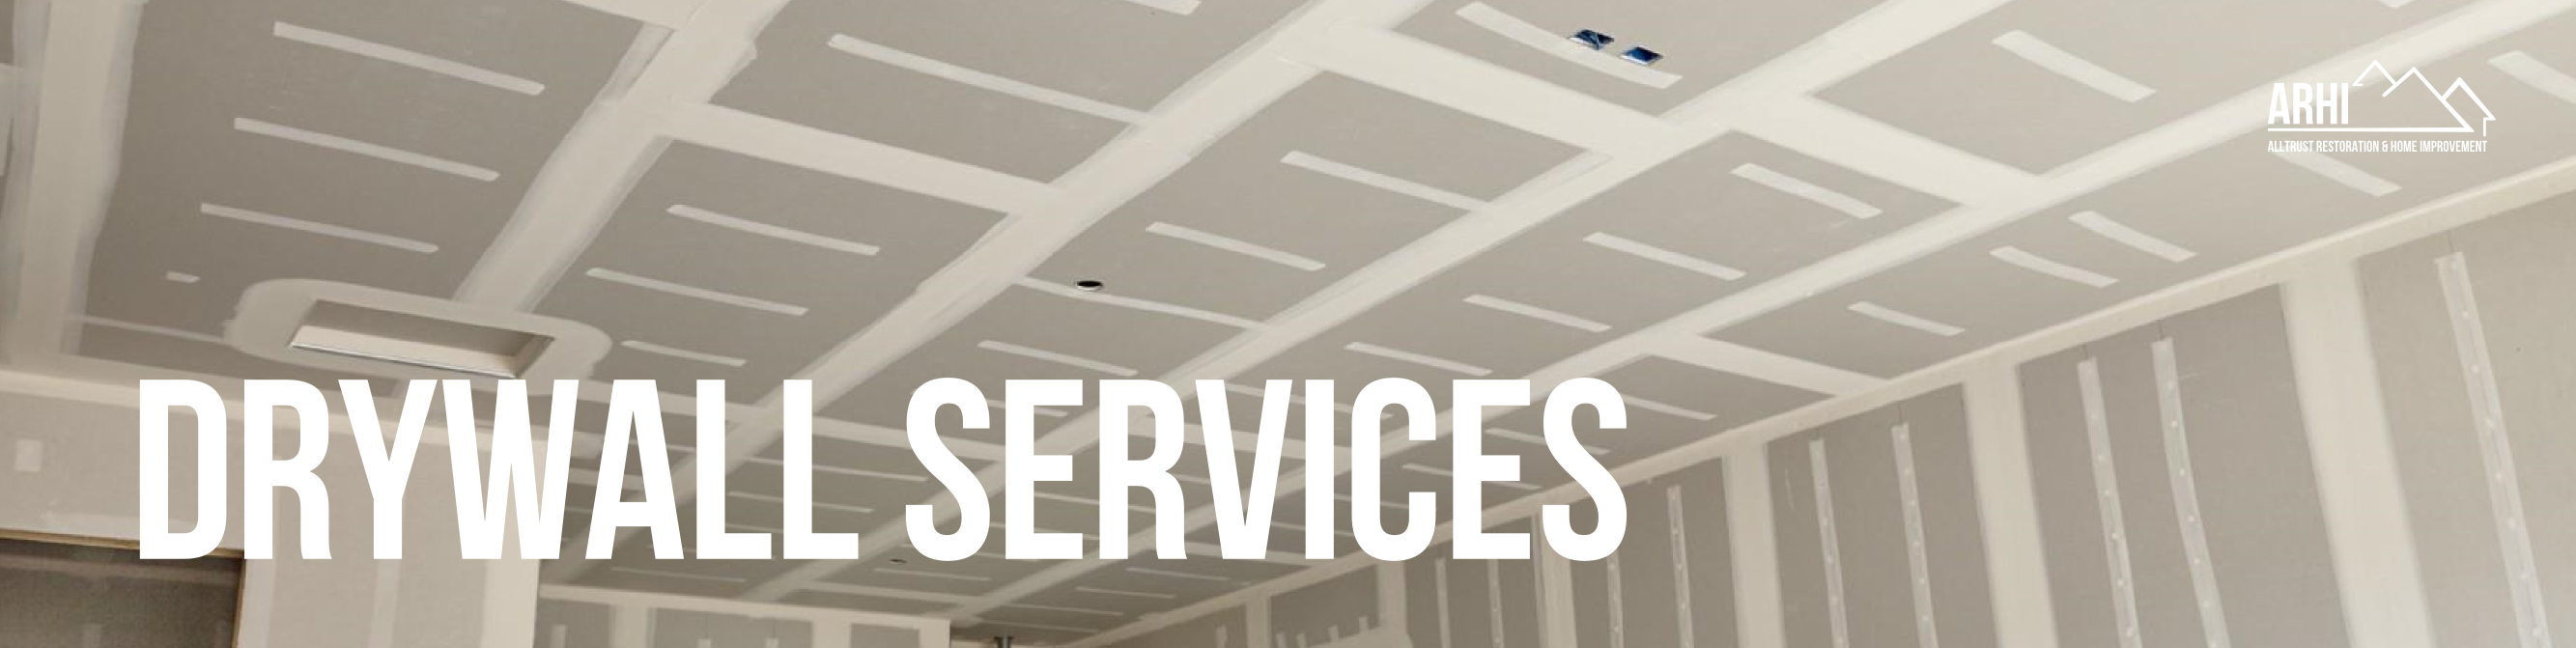 drywall_services